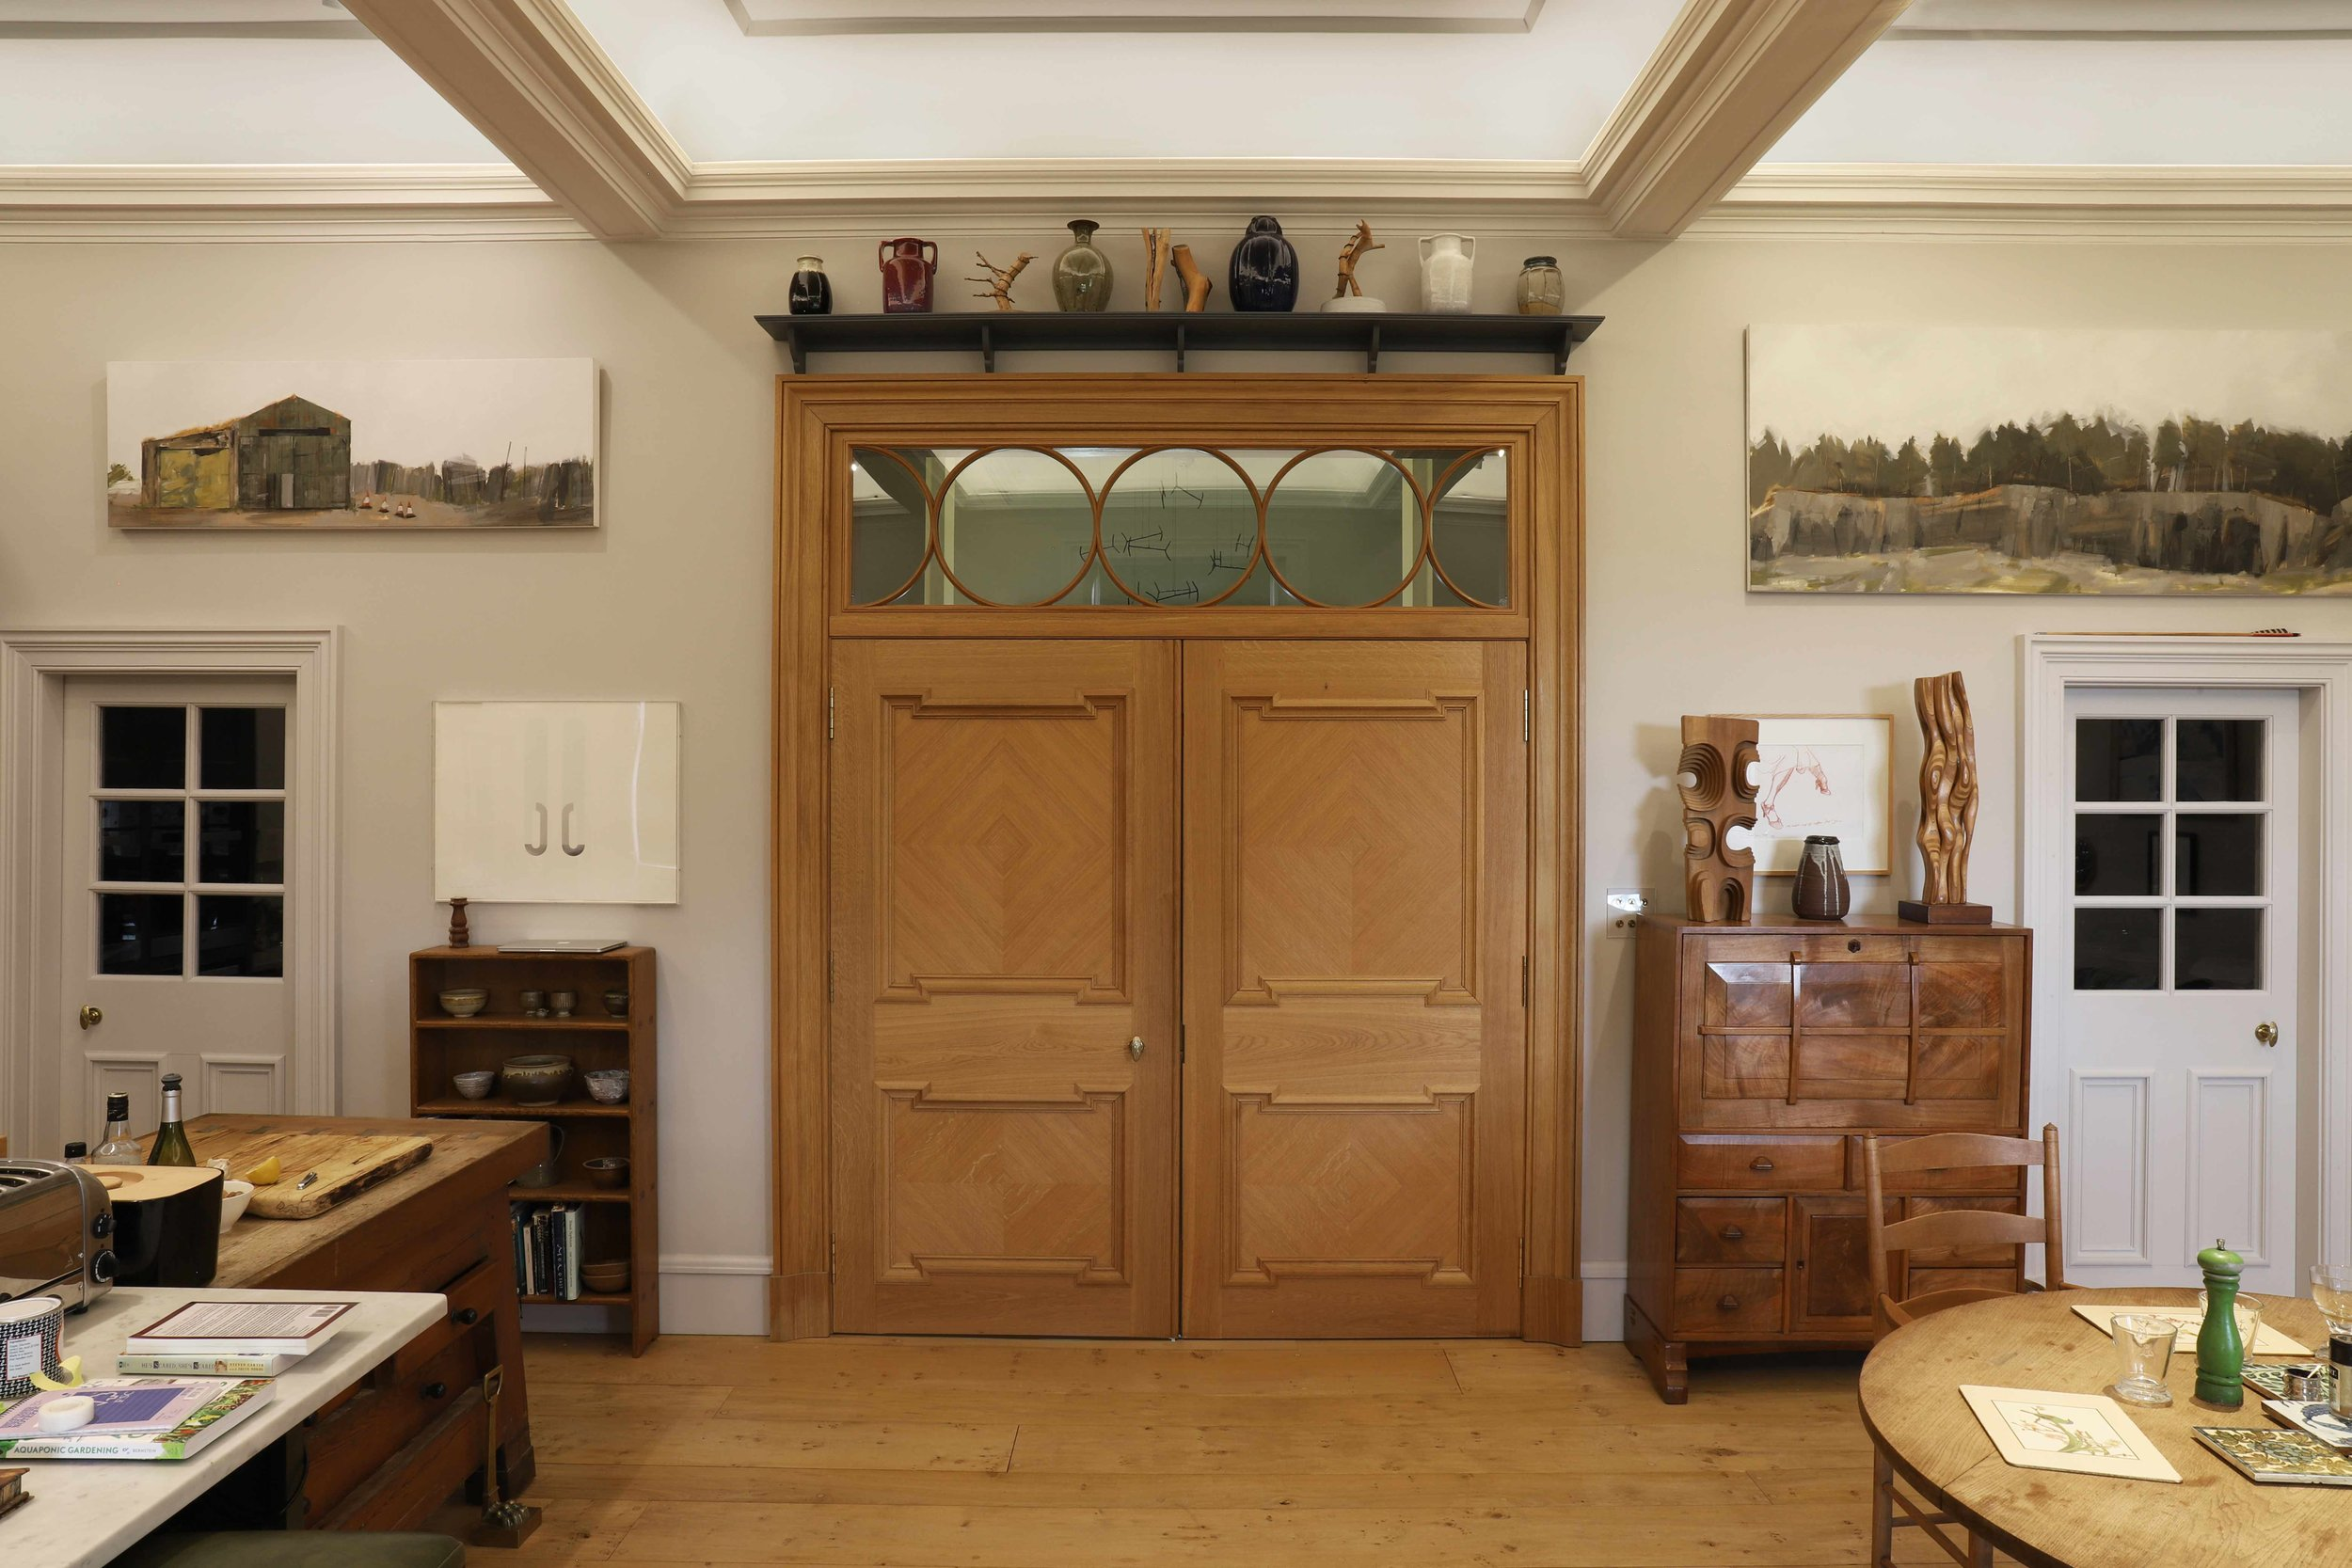 Kitchen door and fanlight scheme in oak, private house, borders.